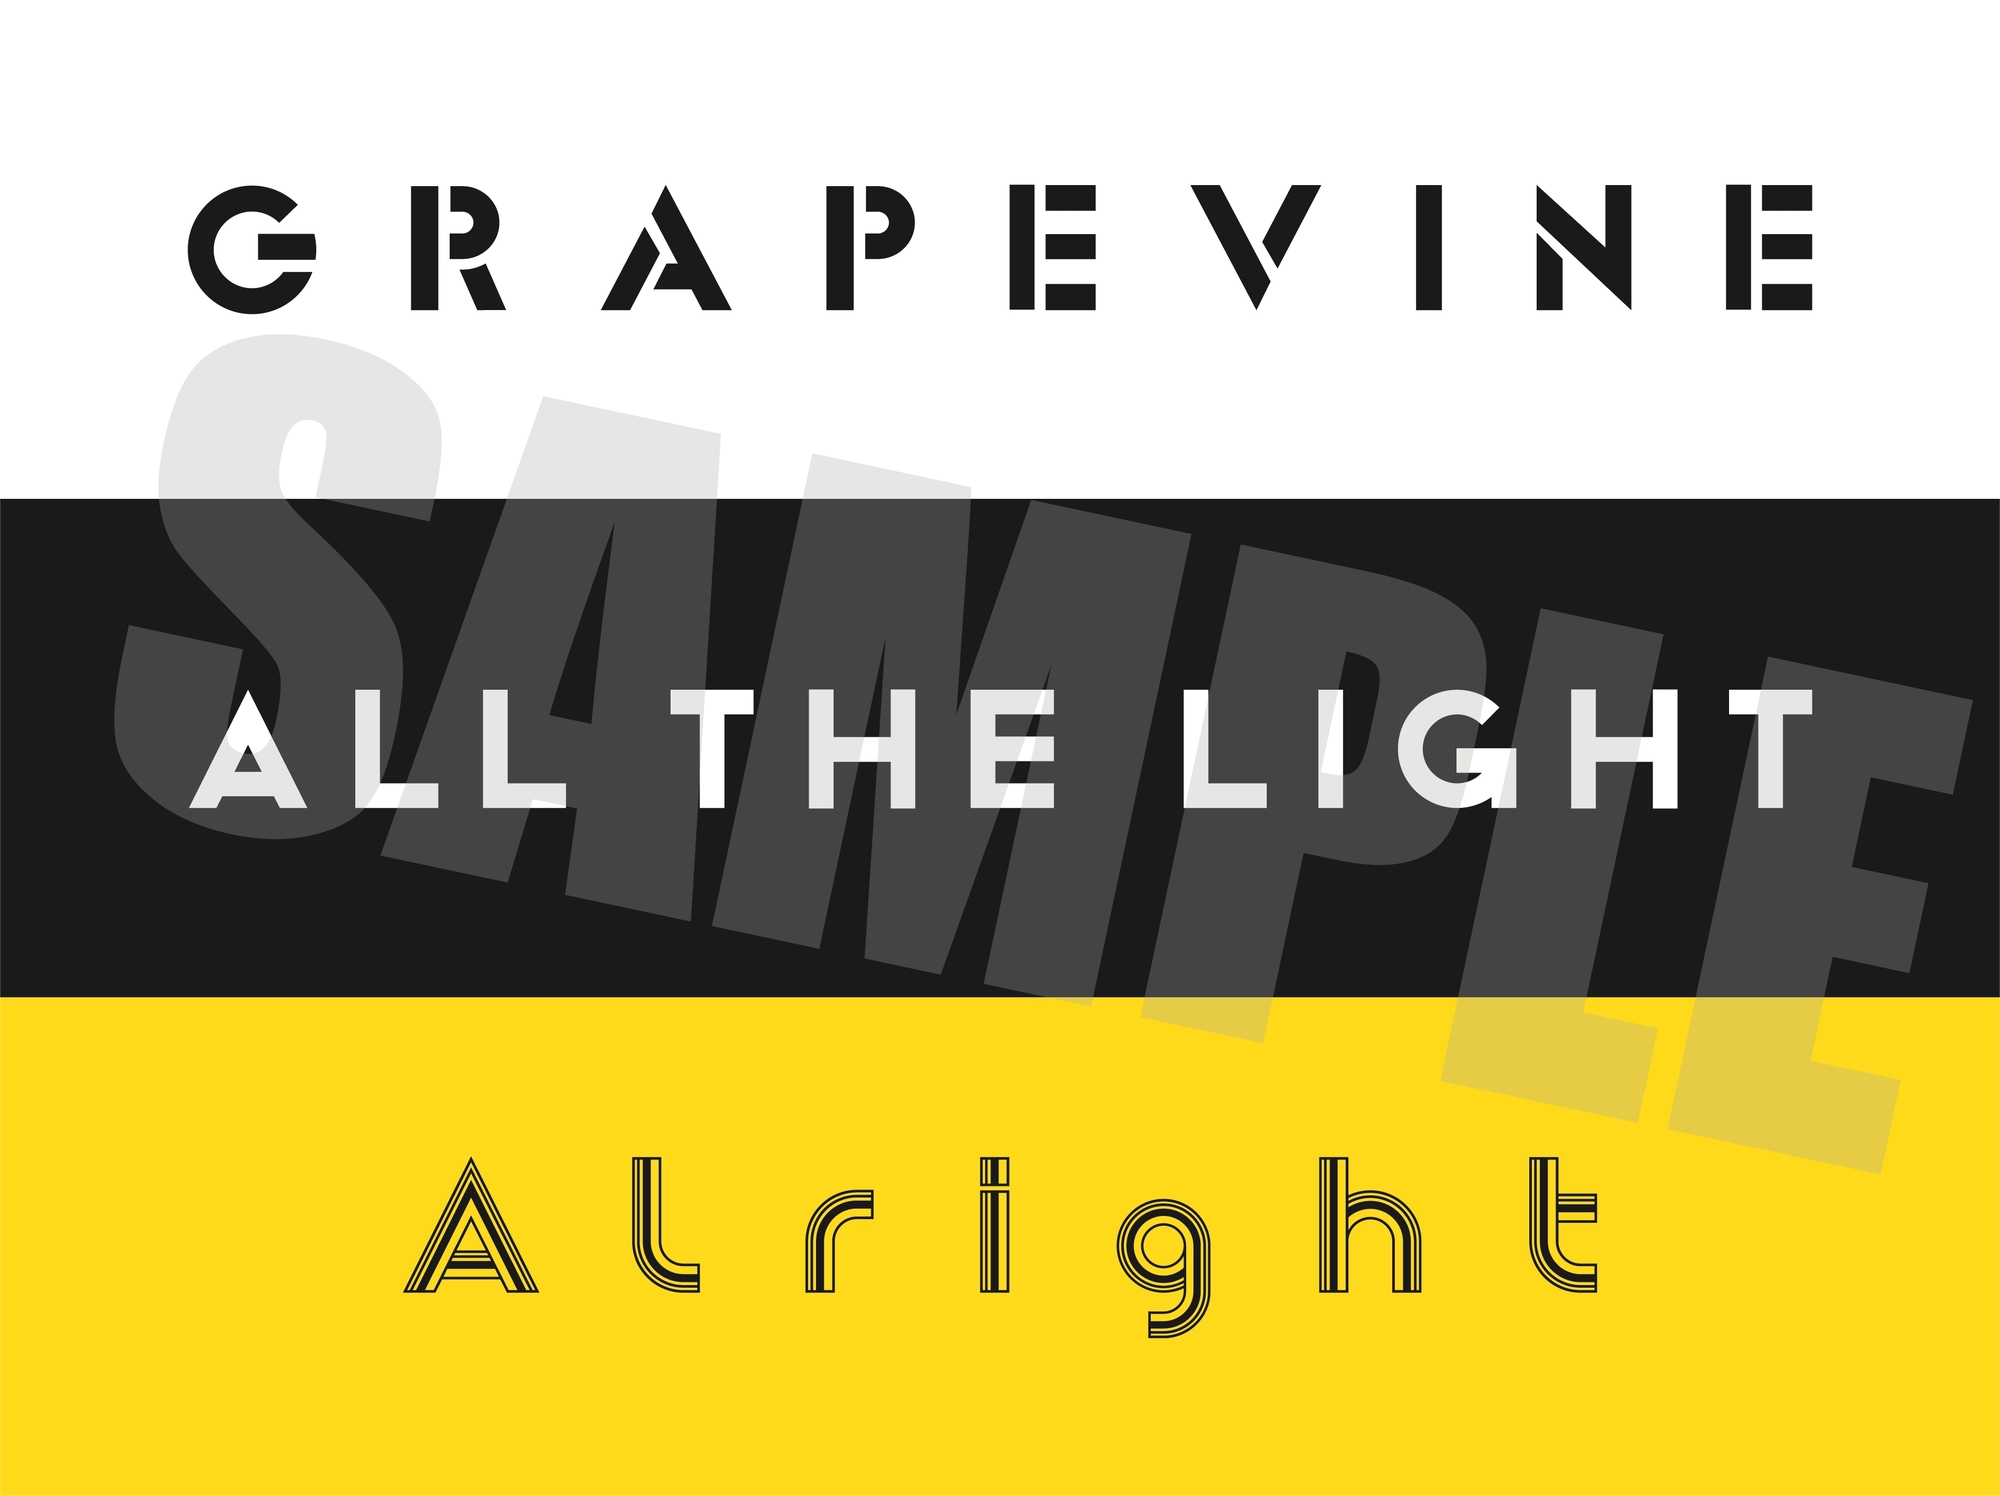 GRAPEVINE『ALL THE LIGHT』box logoステッカー